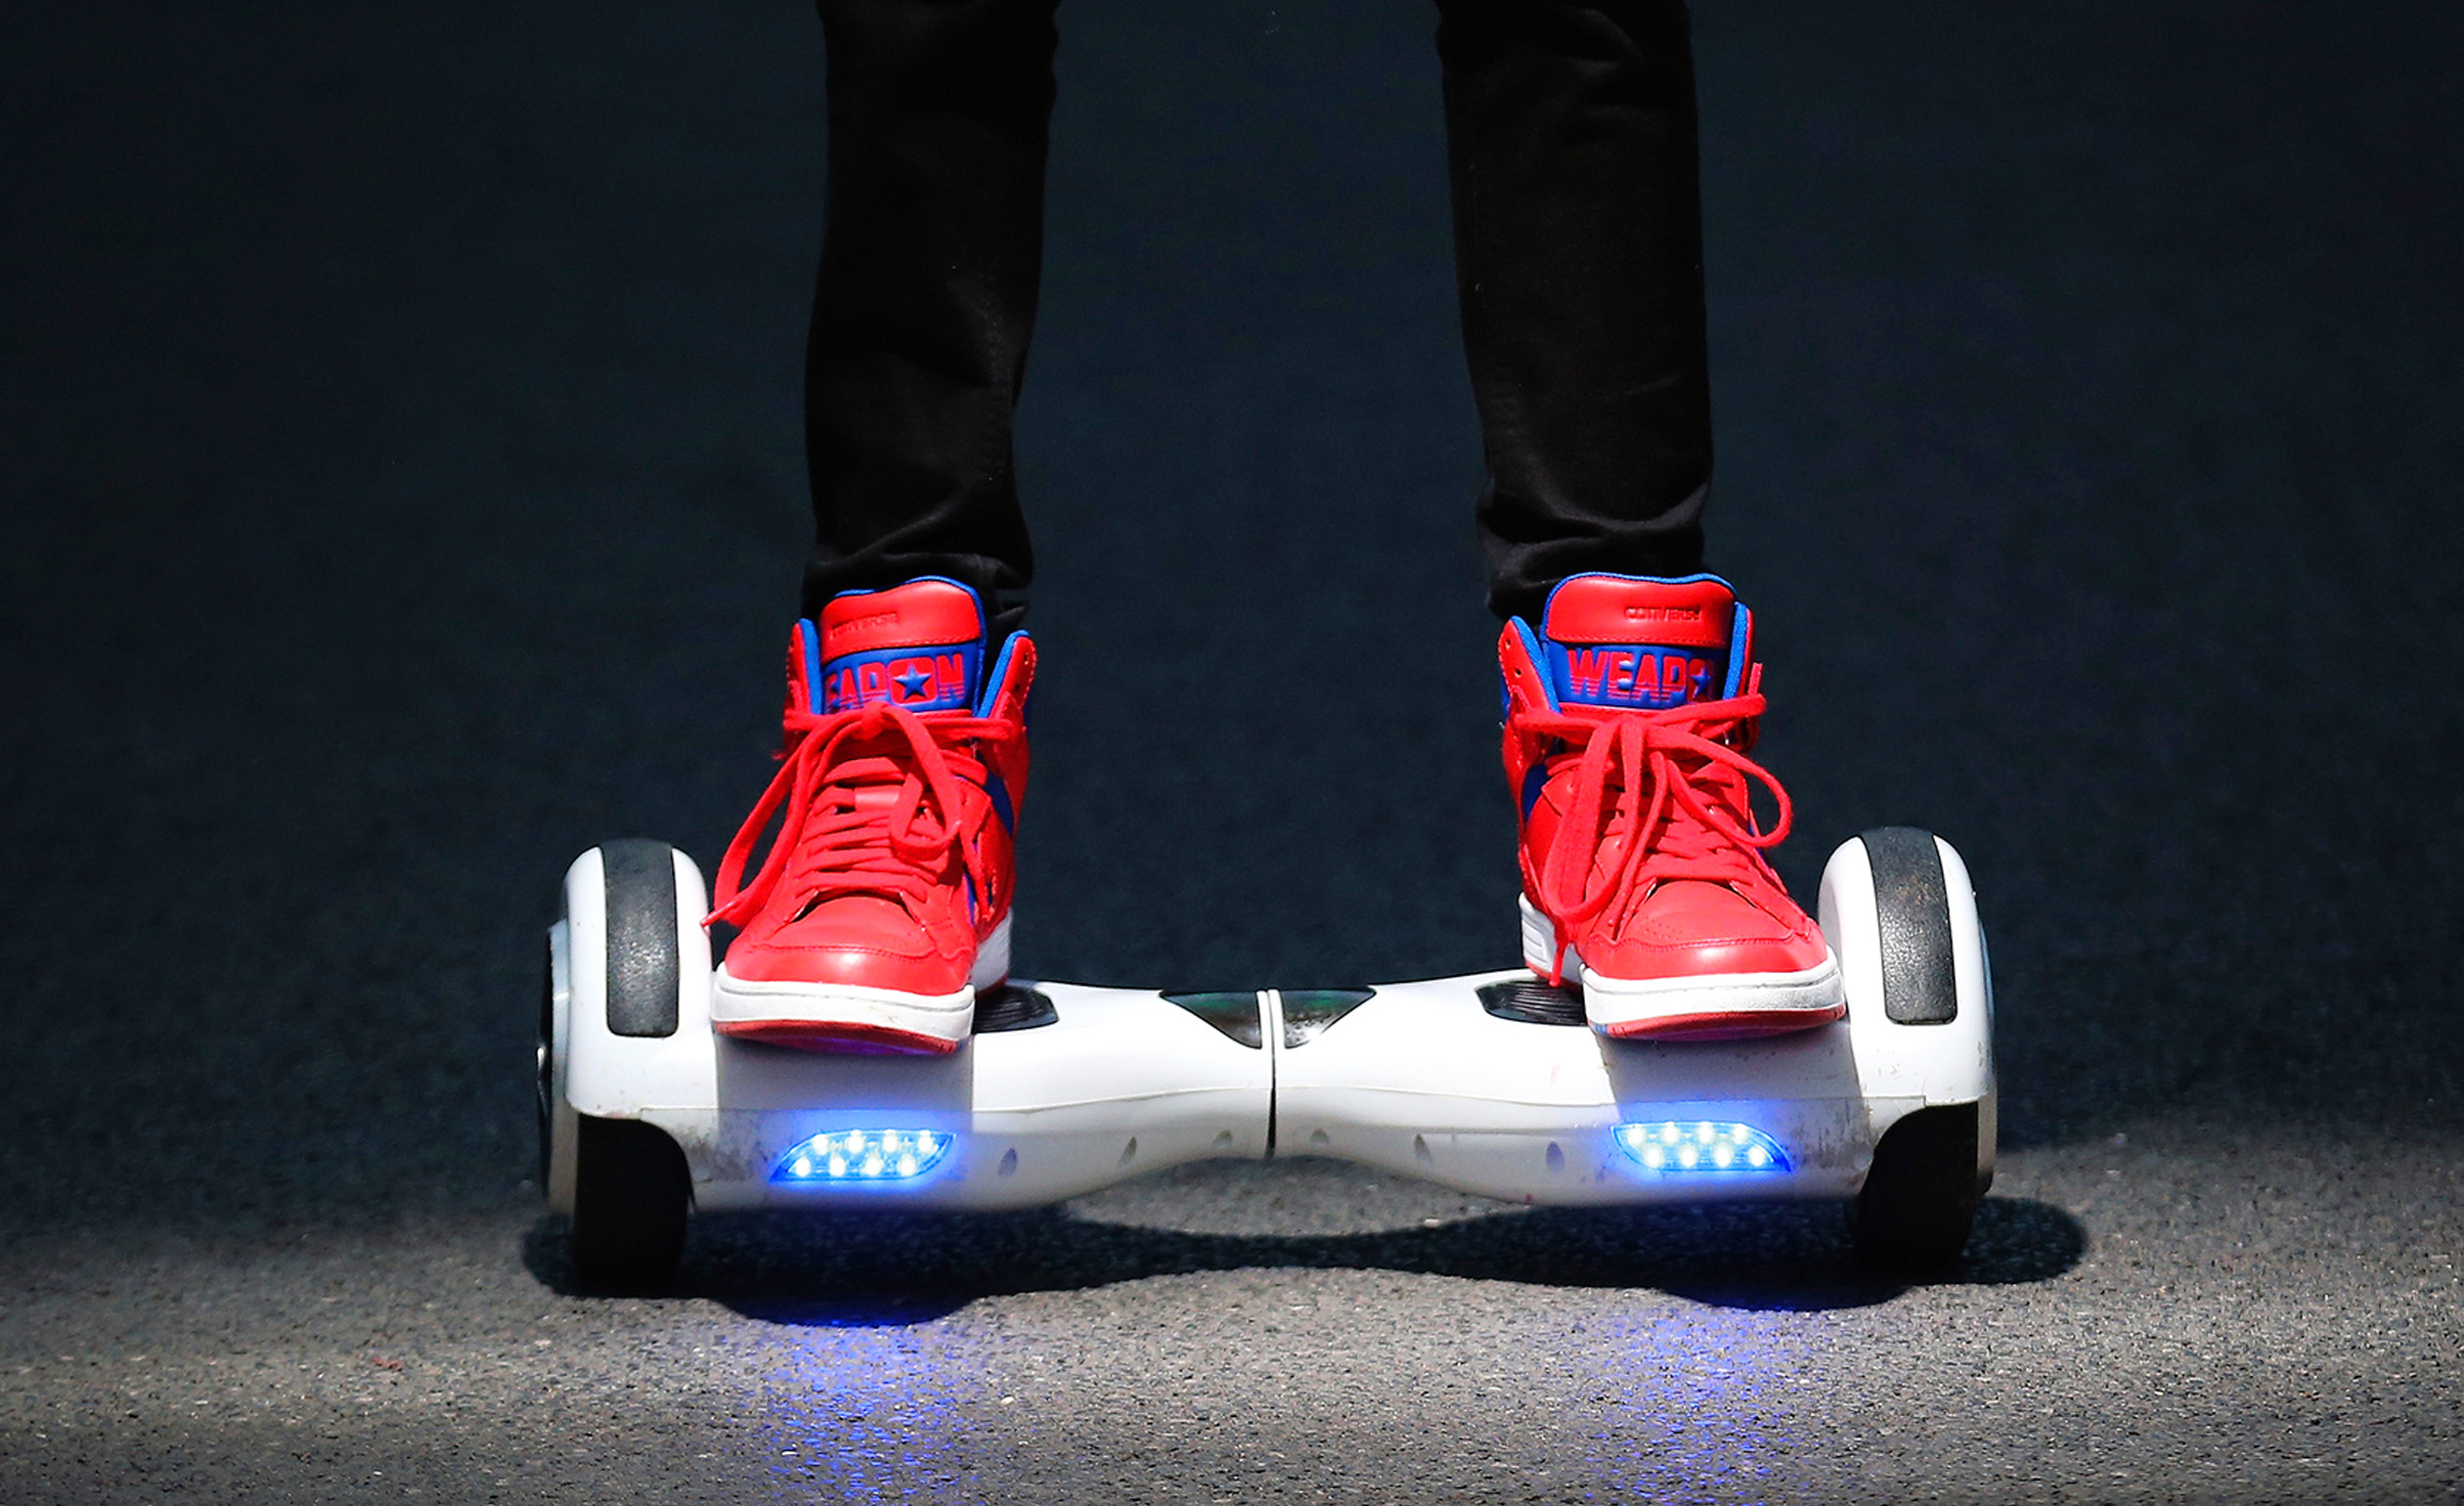 CHI.03.01.16.Hoverboards.02